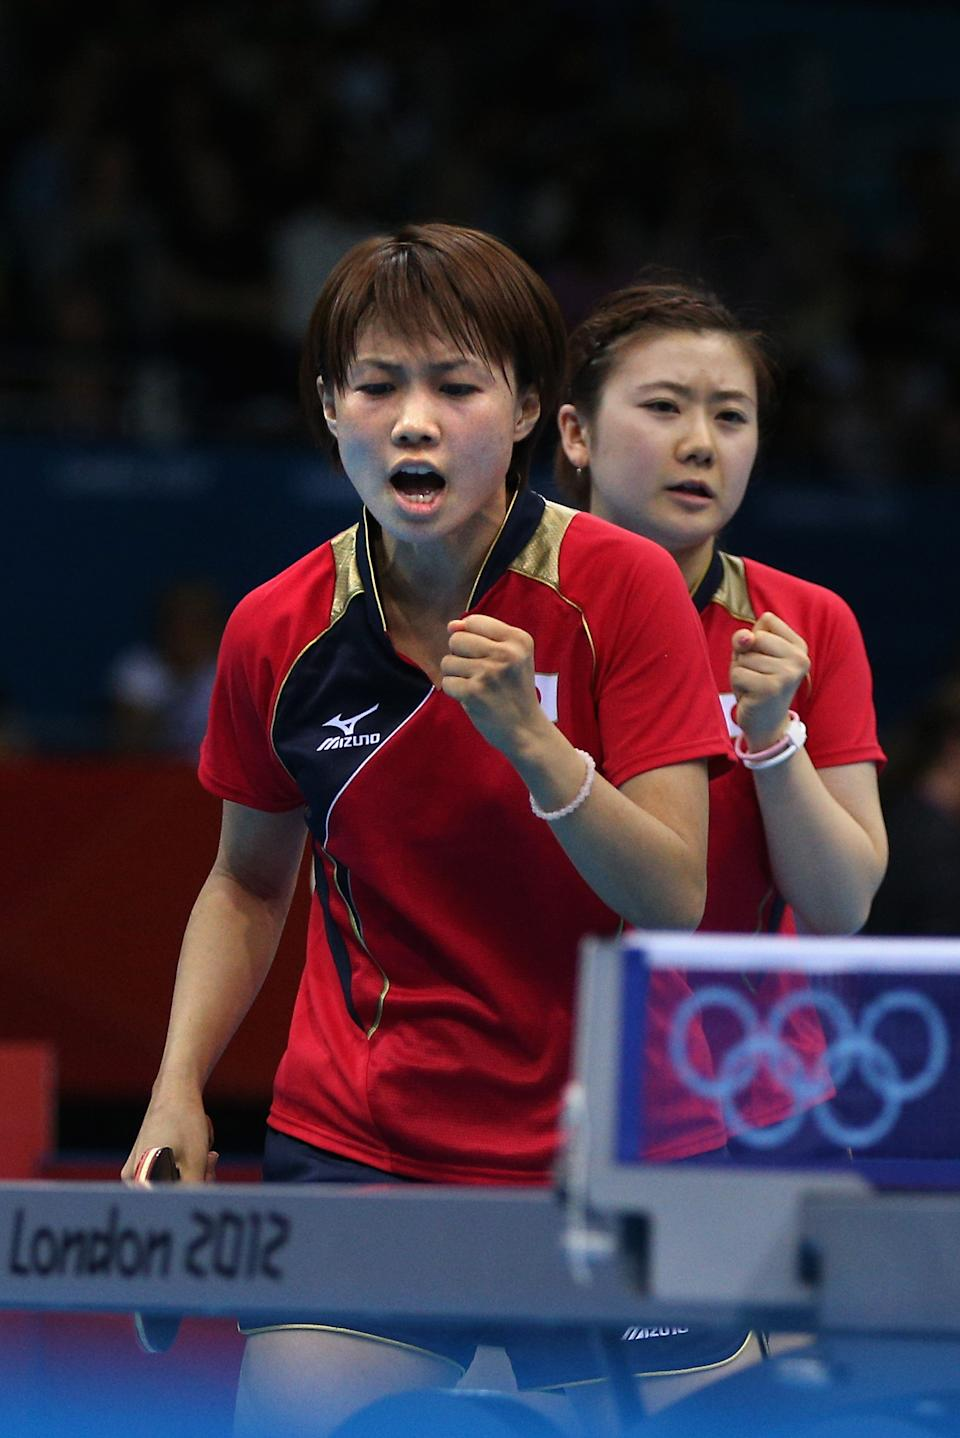 Ai Fukuhara and Sayaka Hirano of Japan celebrate during Women's Team Table Tennis quarterfinal match against team of Germany on Day 8 of the London 2012 Olympic Games at ExCeL on August 4, 2012 in London, England. (Photo by Feng Li/Getty Images)